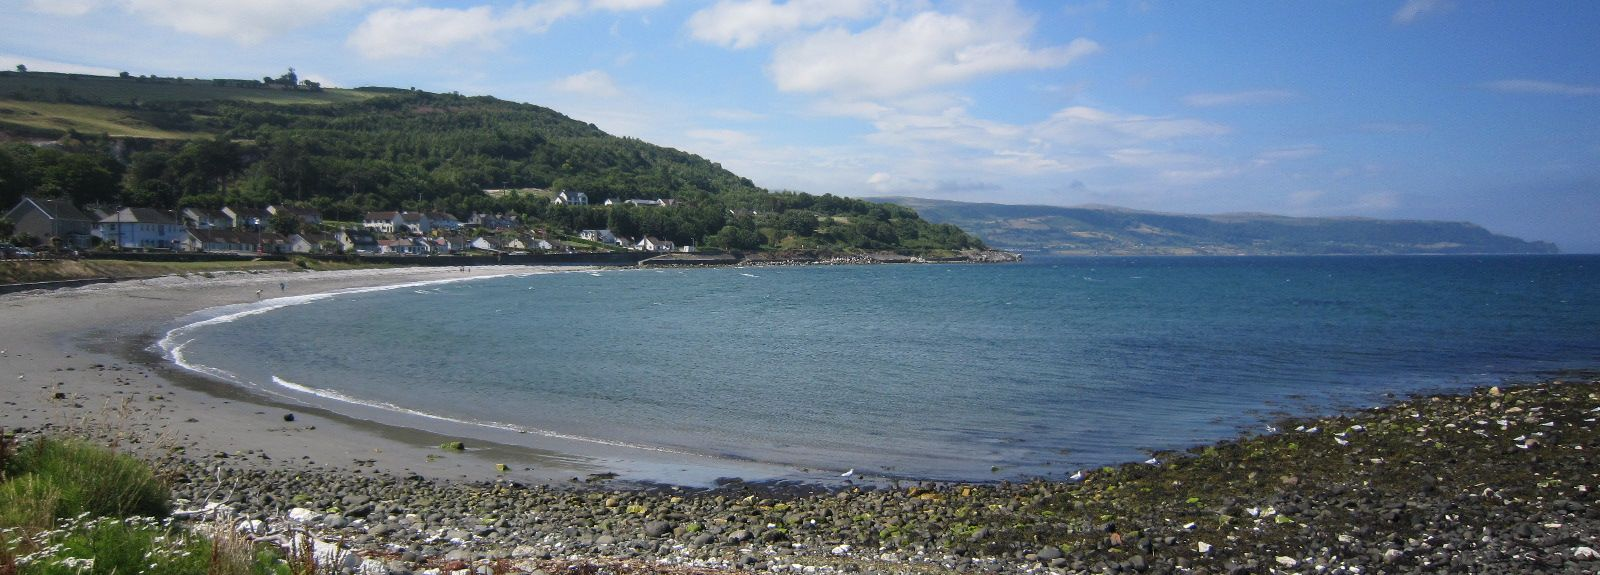 Cushendun Beach, Ballymena, Northern Ireland, UK